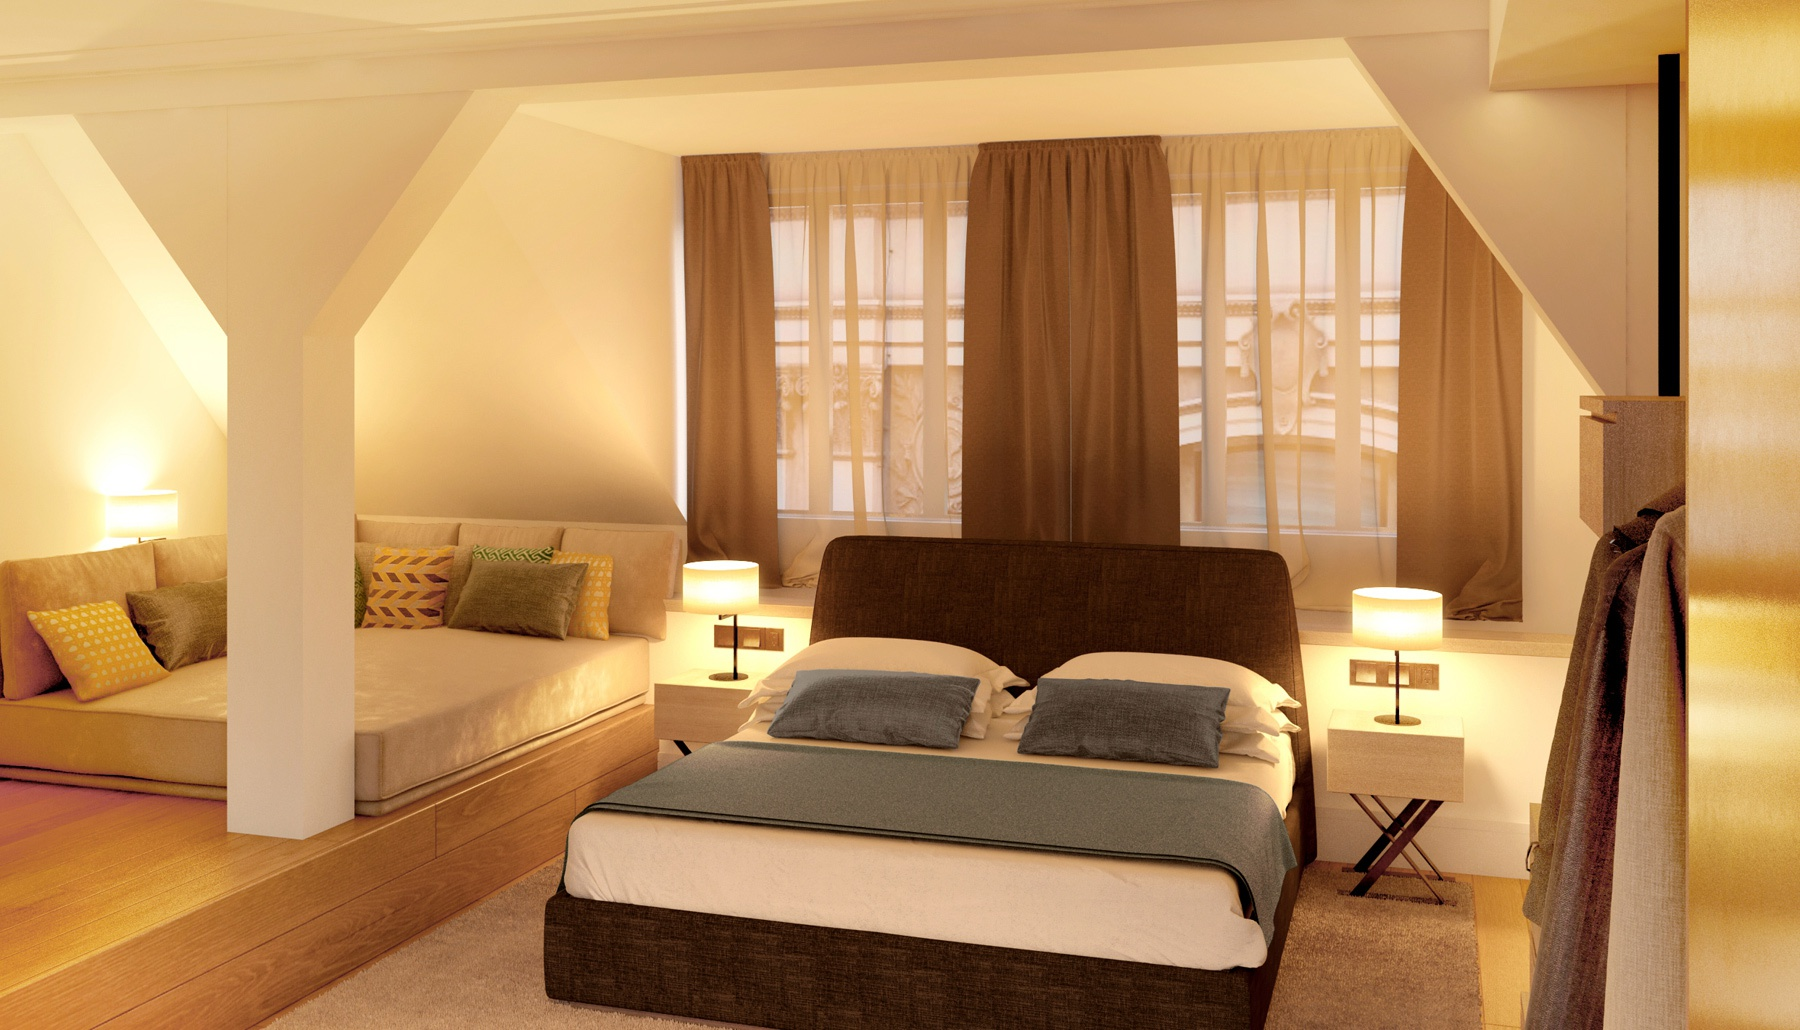 Rooms: BoHo Hotel, Your Luxury Hotel In Prague